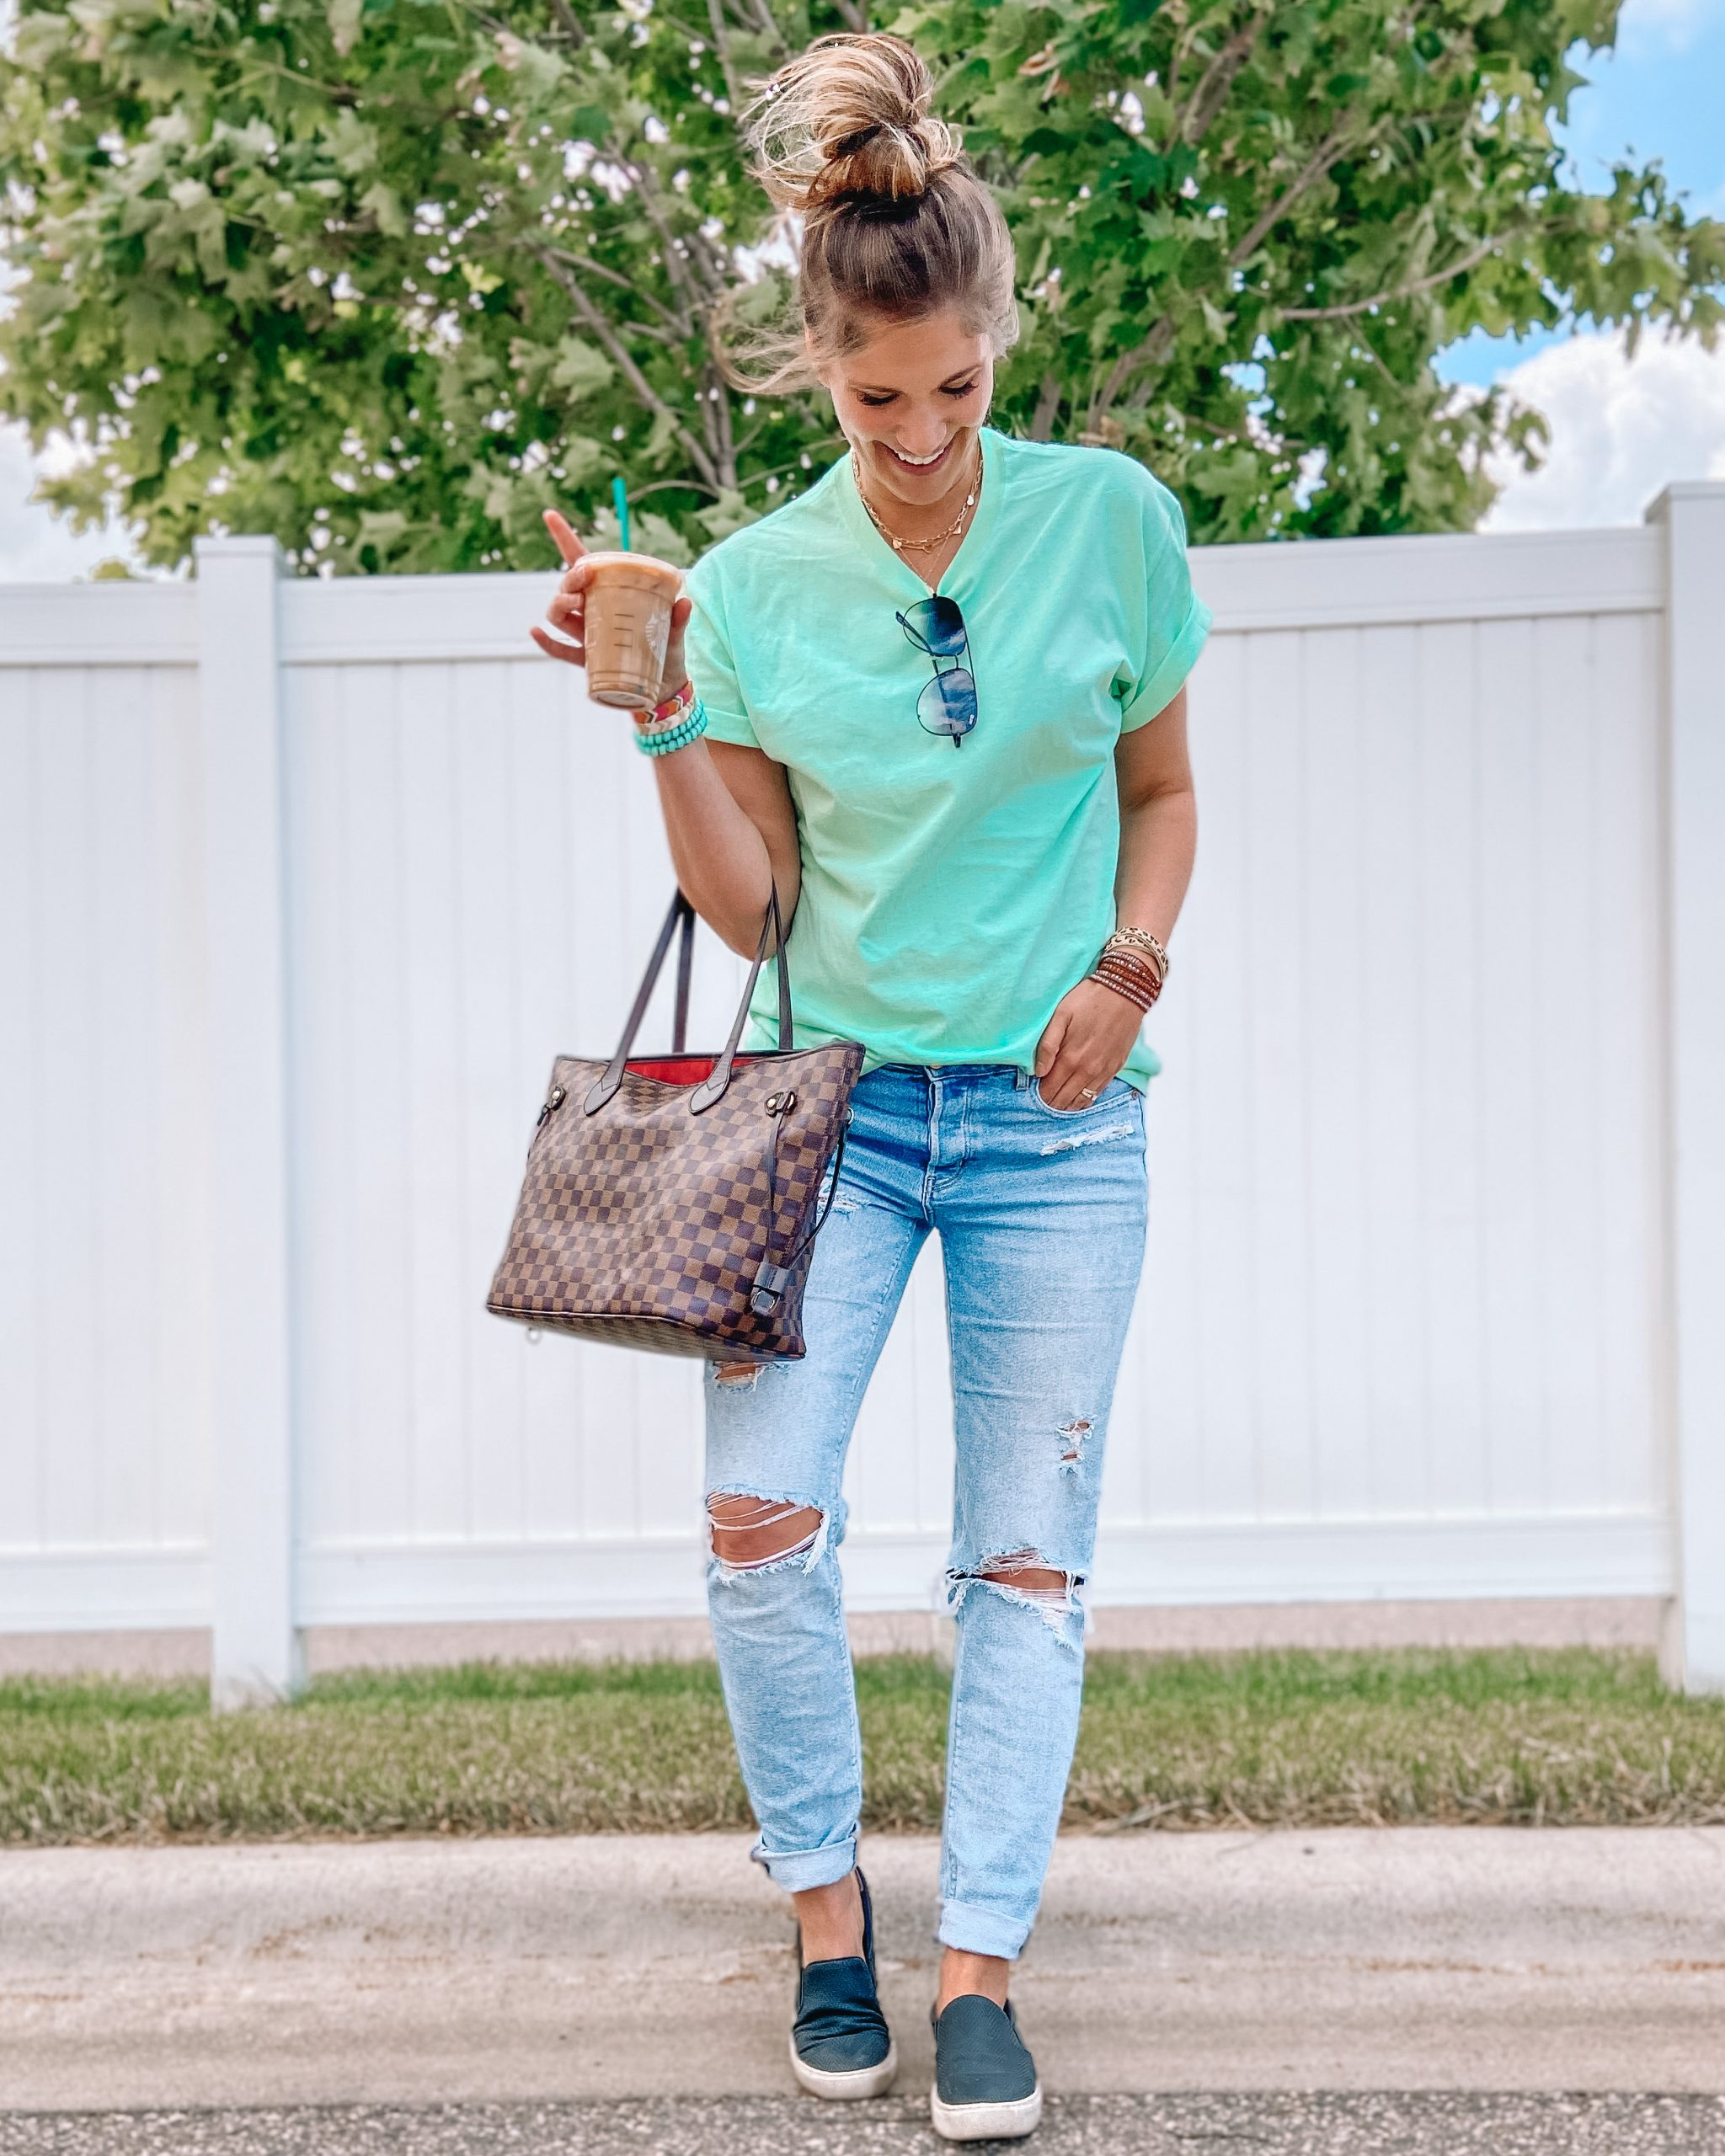 neon green tee tomgirl jeans mom jeans checkered tote quay high key teleties crystal wrap bracelet